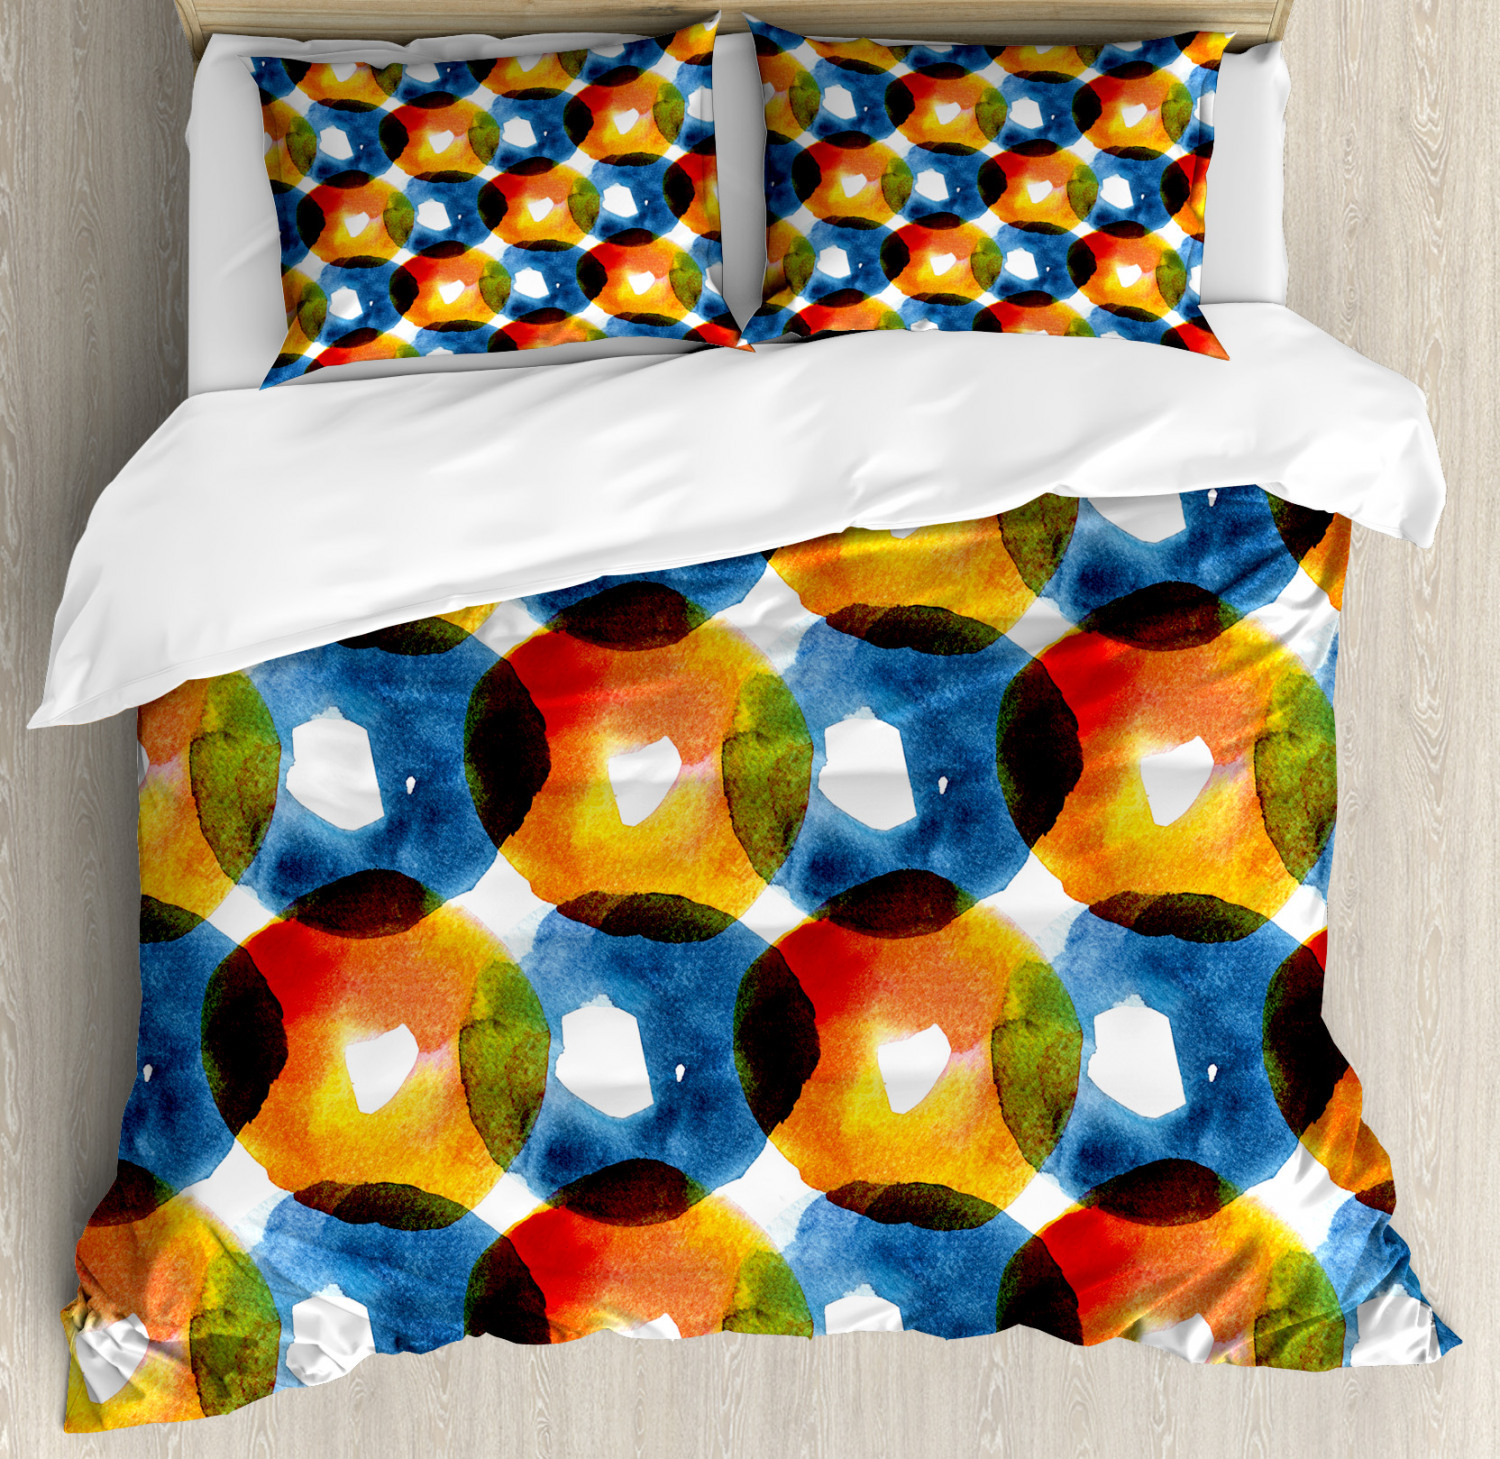 Modern Duvet Cover Set with Pillow Shams WaterColoreee Ring Shapes Print